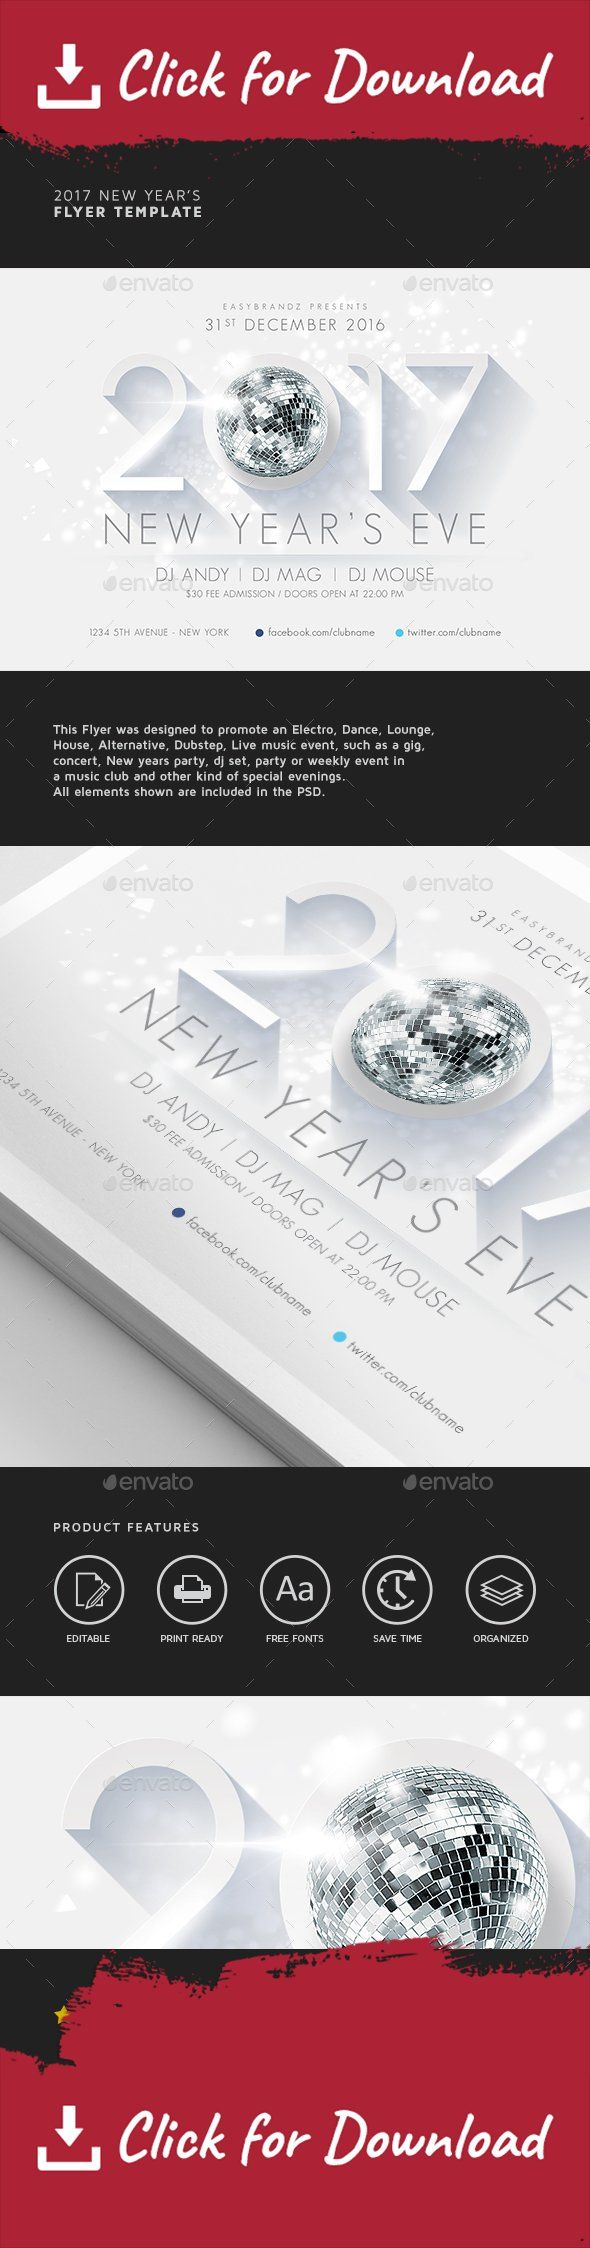 2017 flyer, 2017 new year, advertising, celebration, clean, dance floor, disco, event, festival, flyer, flyer design, holidays, long shadow, new year, new years, night club, nye, party, psd, techno, template, white     	This Flyer was designed to promote an Electro, Dance, Lounge, House, Alternative, Dubstep, Live music event, such as a gig, concert, 2017 New years party, dj set, party or weekly event in a music club and other kind of special evenings. All elements shown are included in…